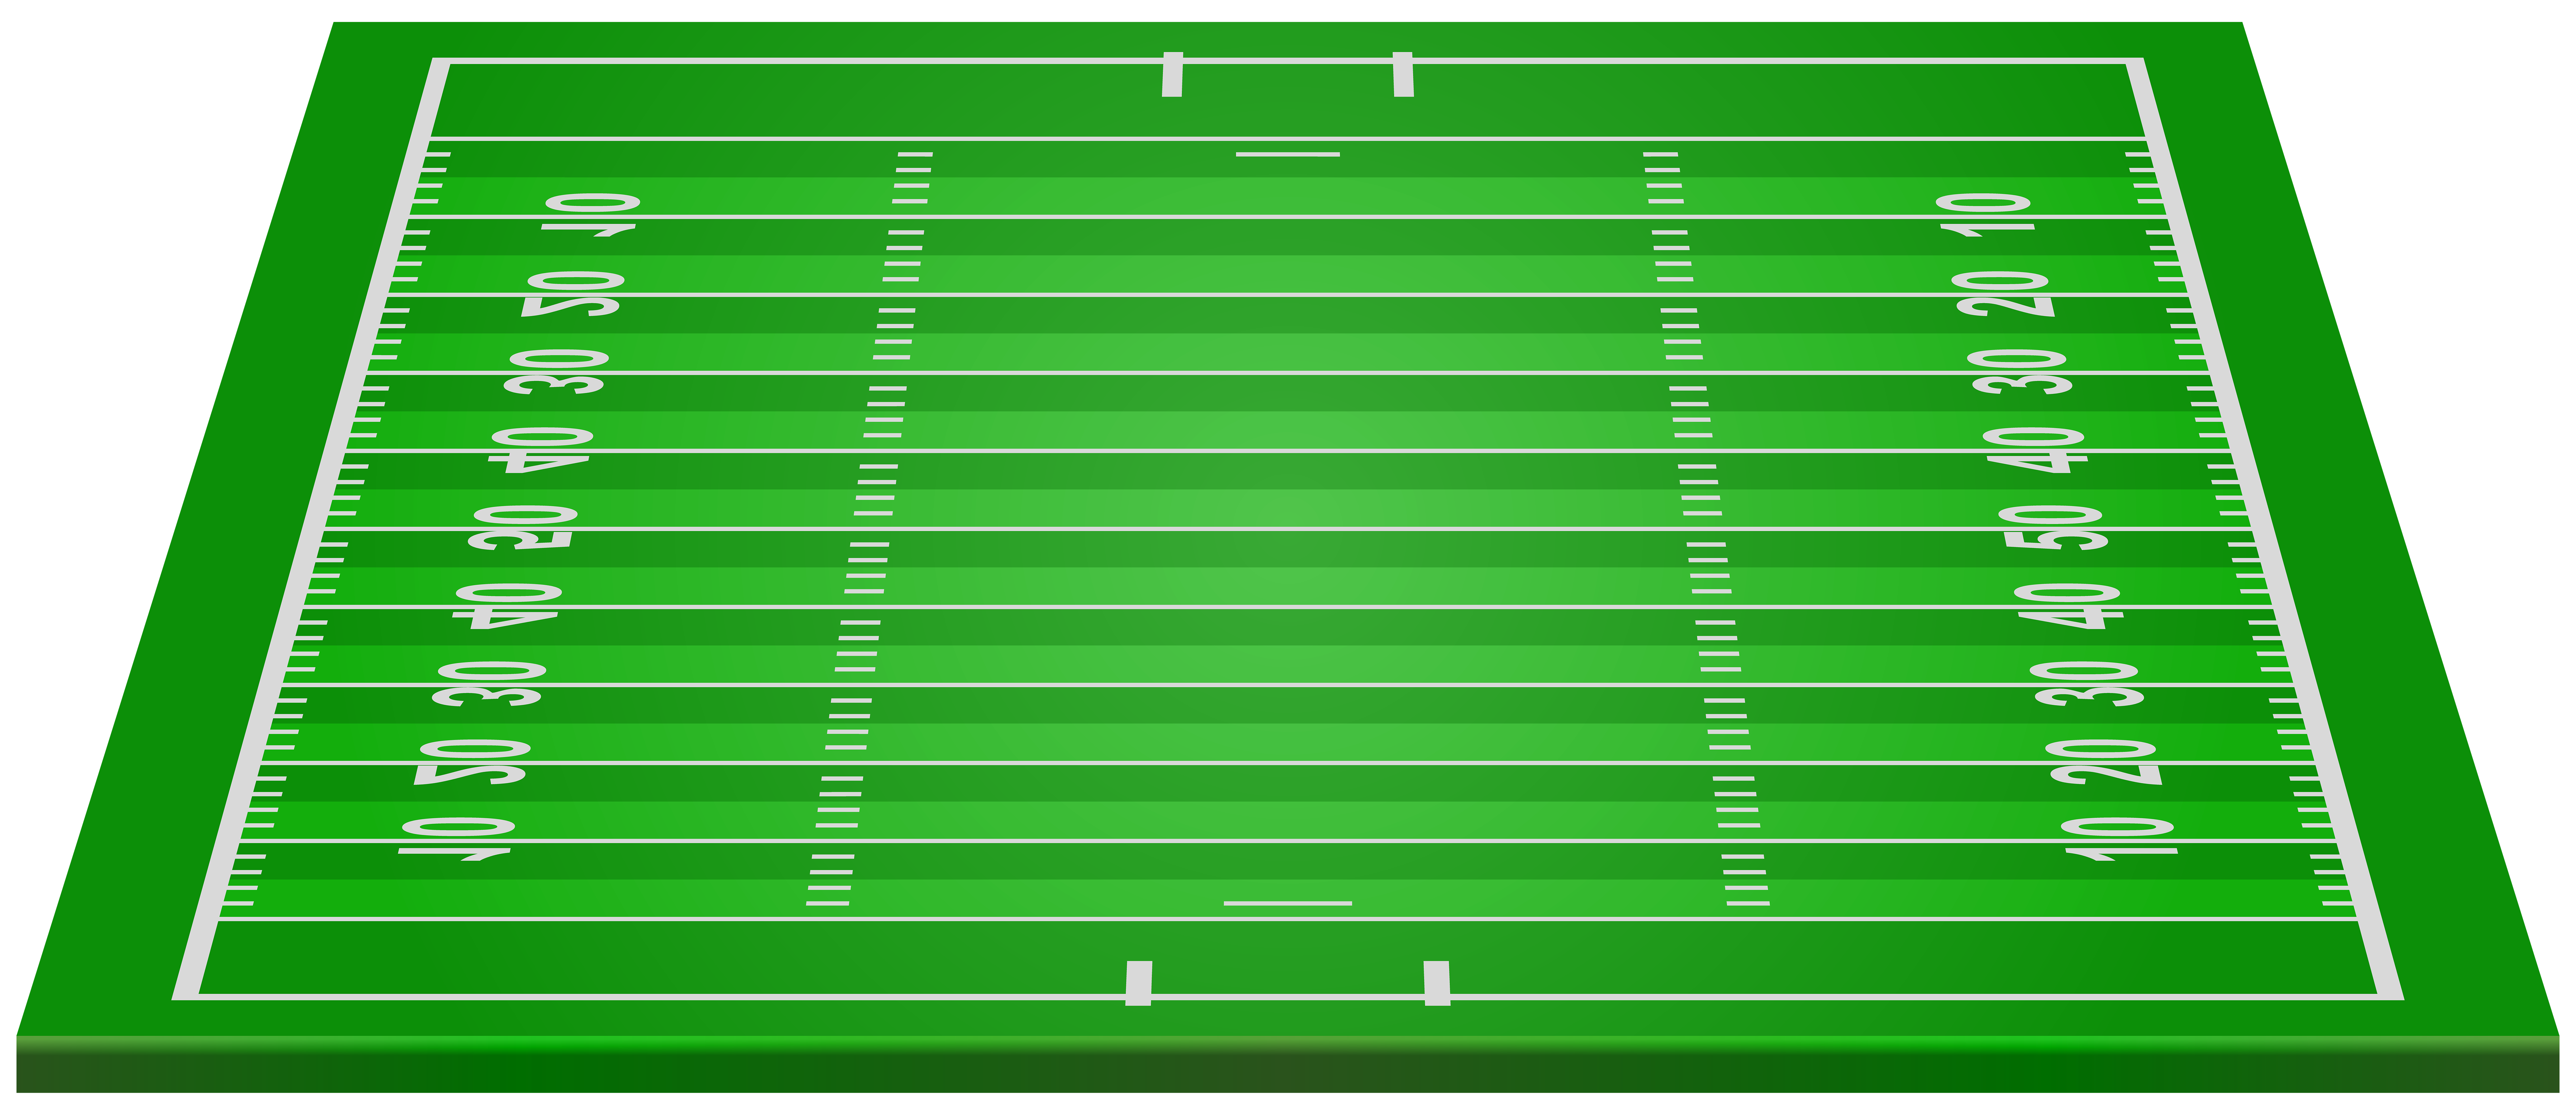 Football field png. American pitch clip art